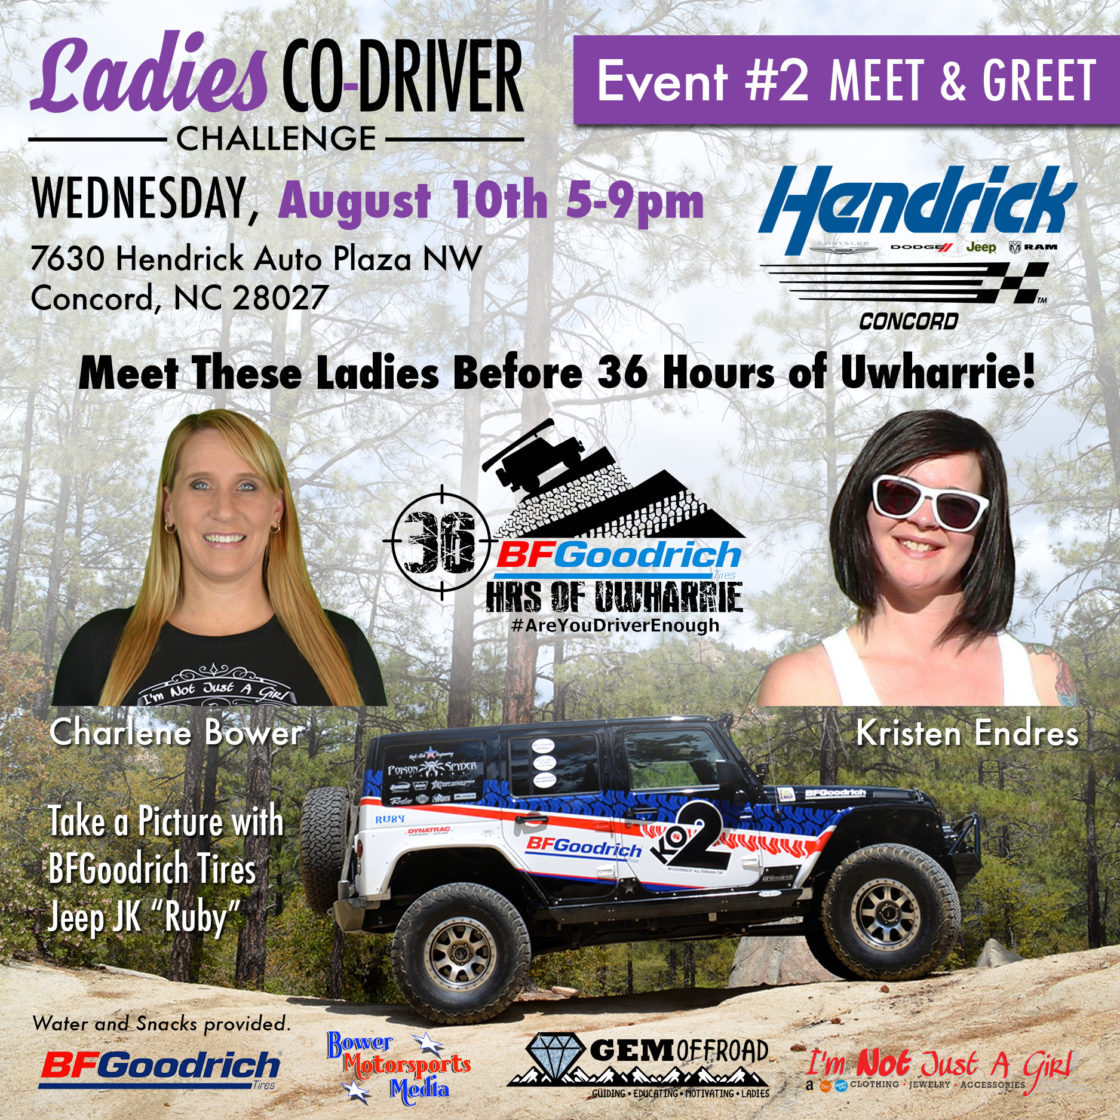 Two Ladies Co-Driver Challenge Meet & Greets Before 36 Hours of Uwharrie at Jeep Dealerships